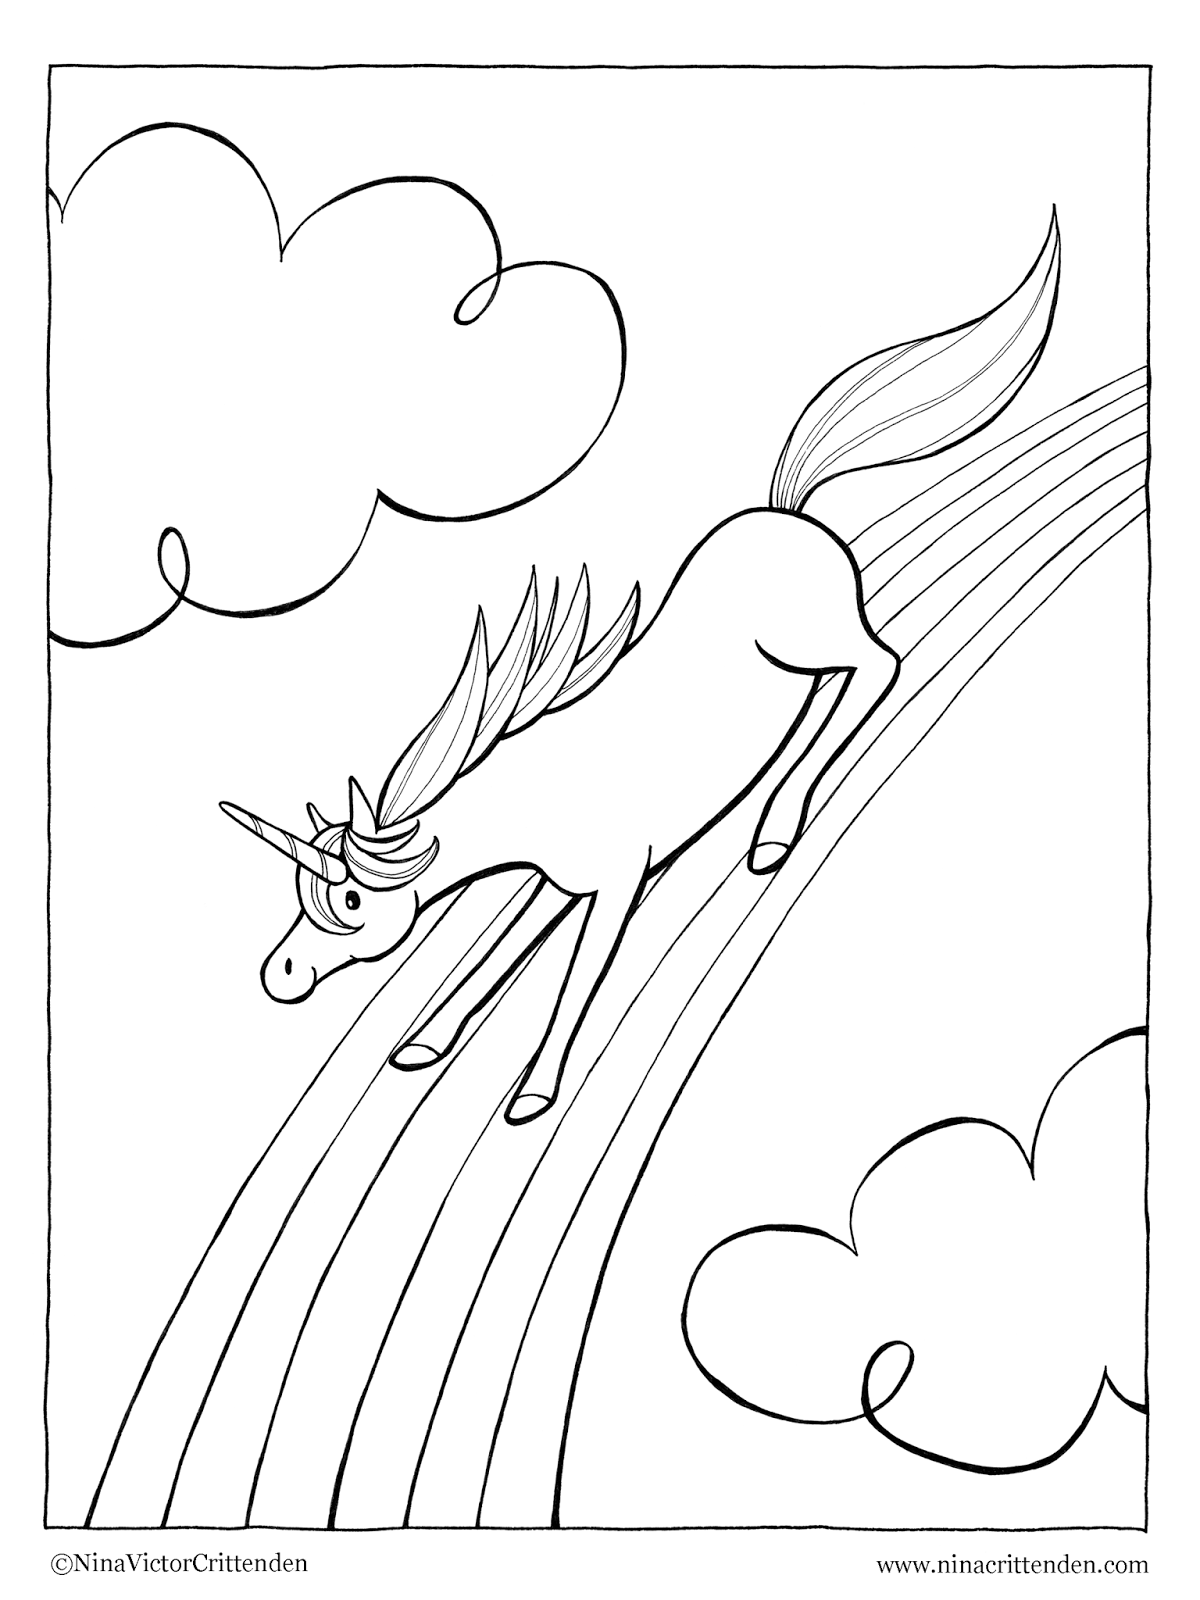 Nina victor crittenden 39 s blog for Rainbow unicorn coloring pages